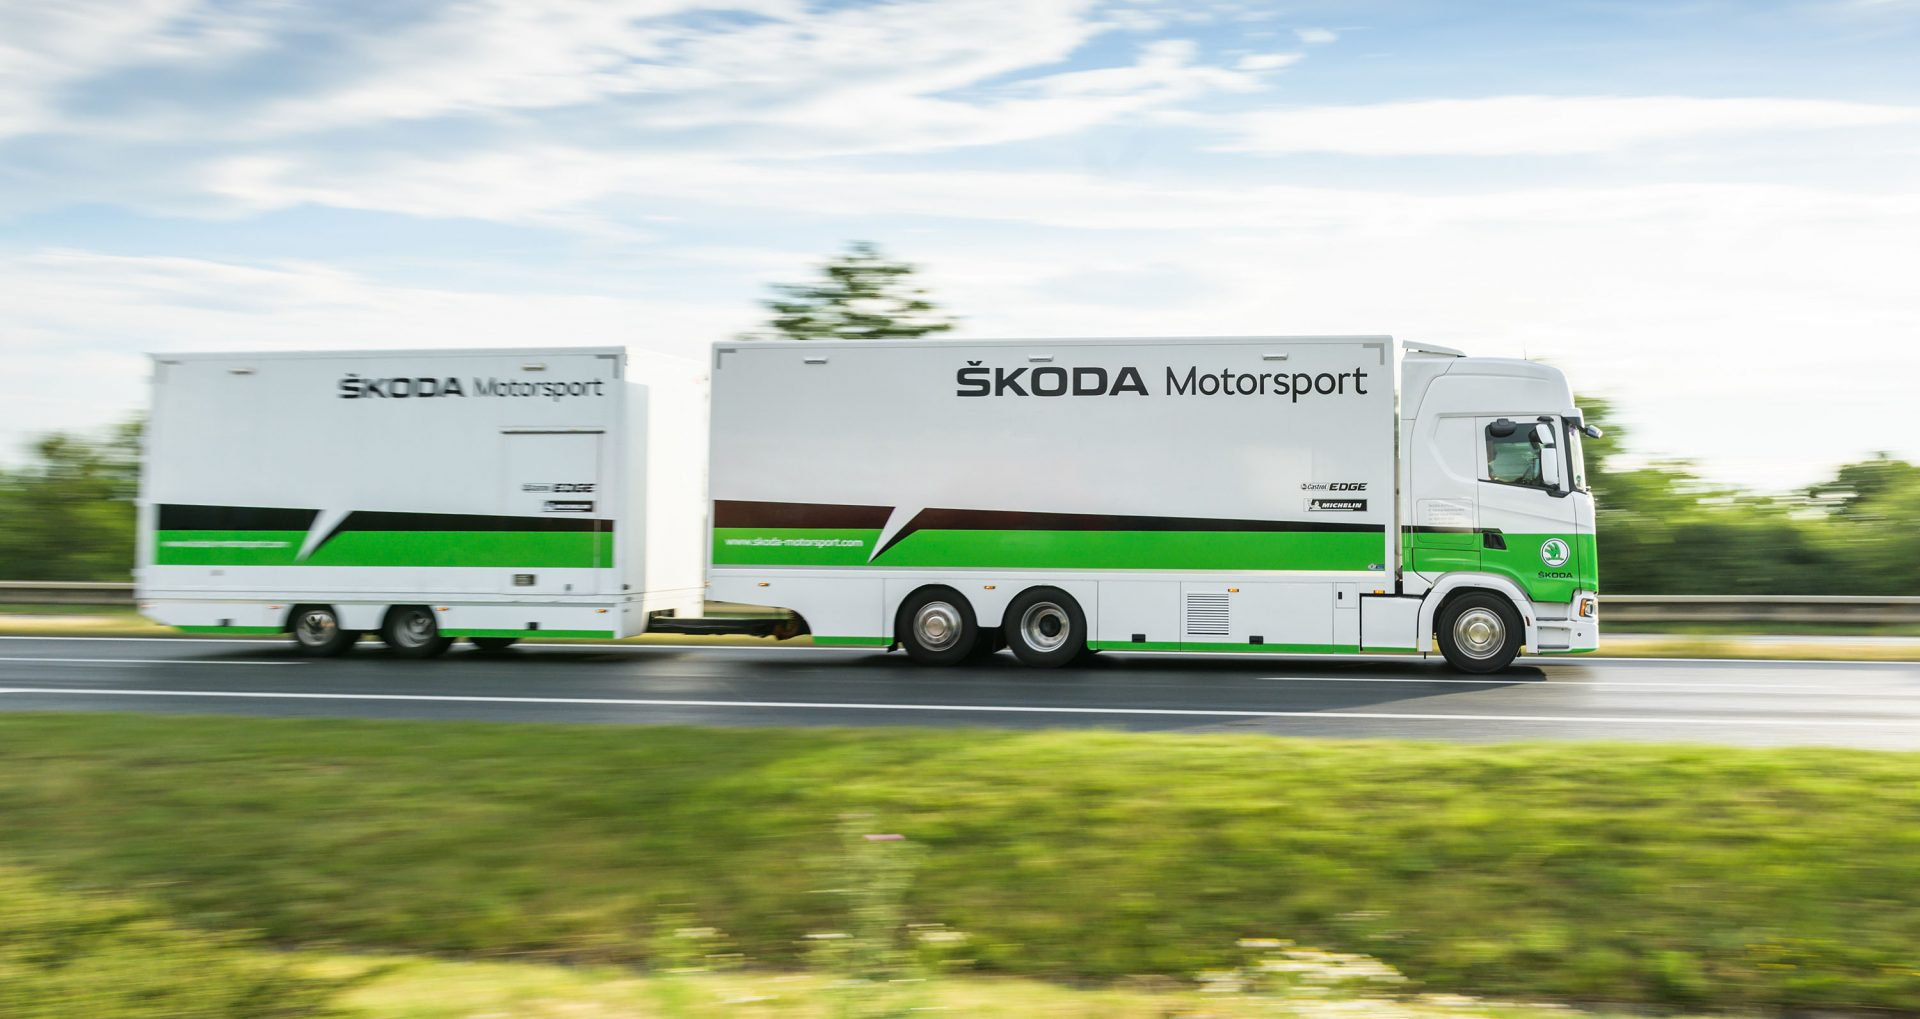 ŠKODA Motorsport Team